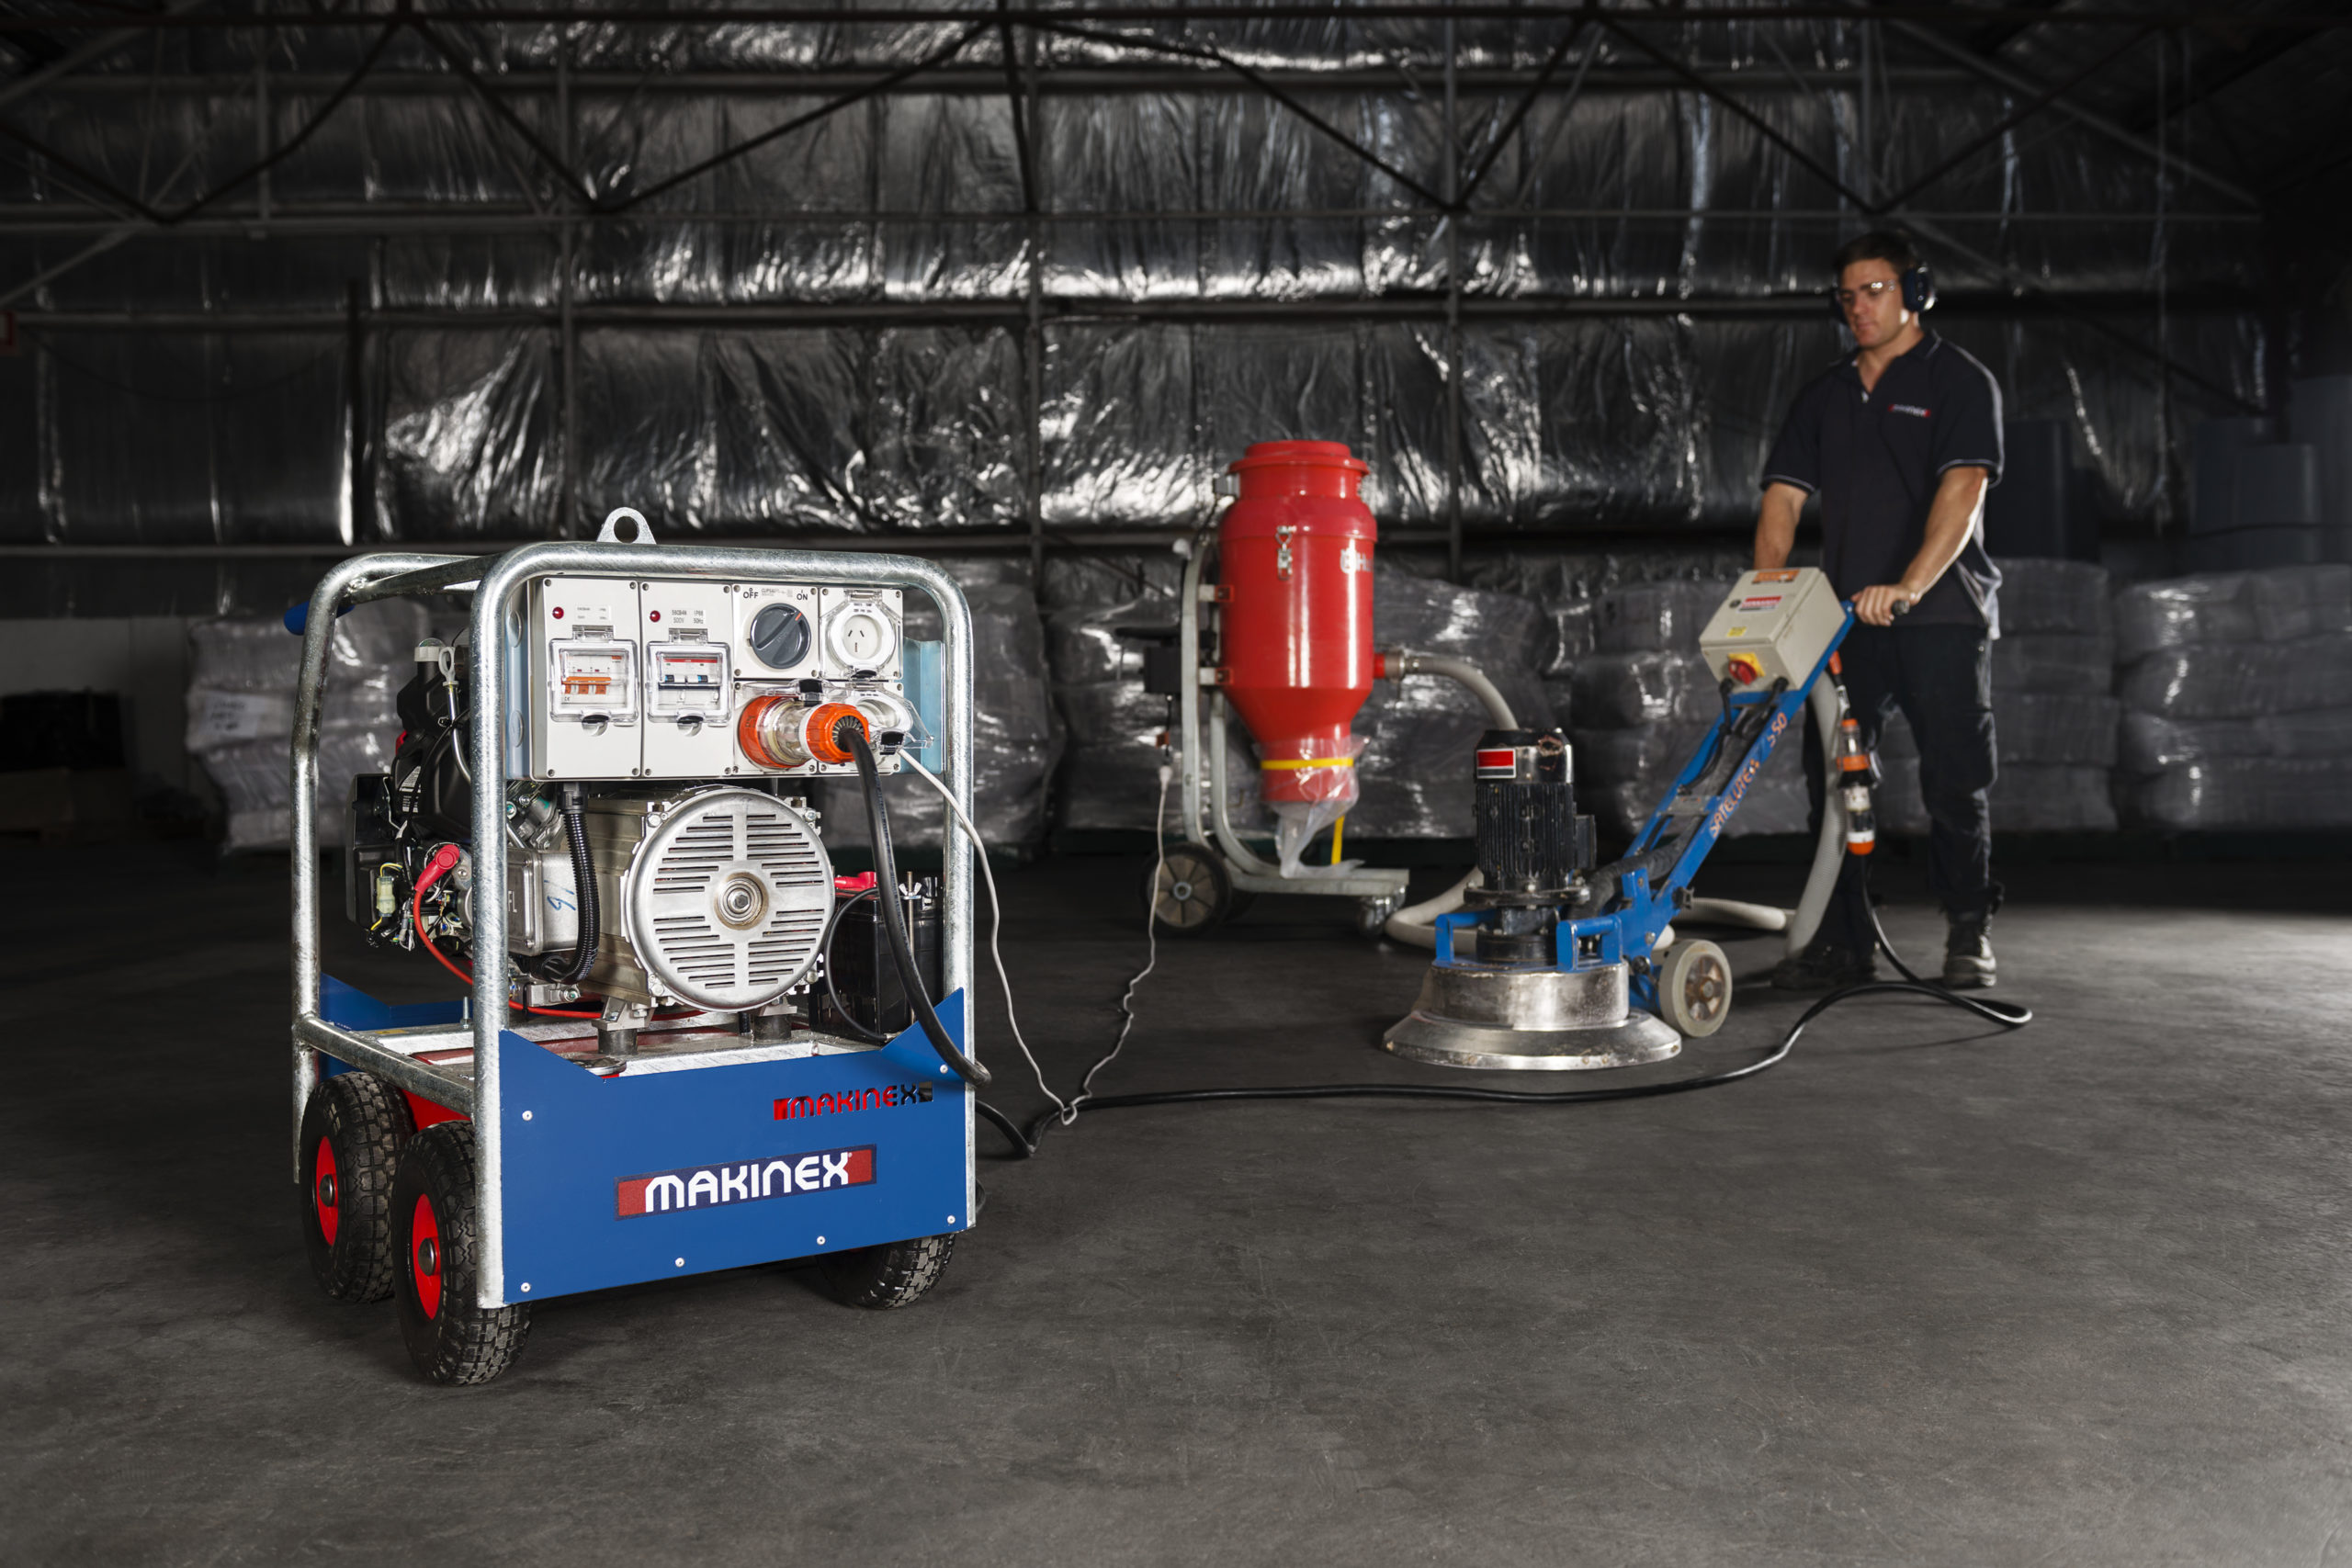 The value proposition of compact, portable generators